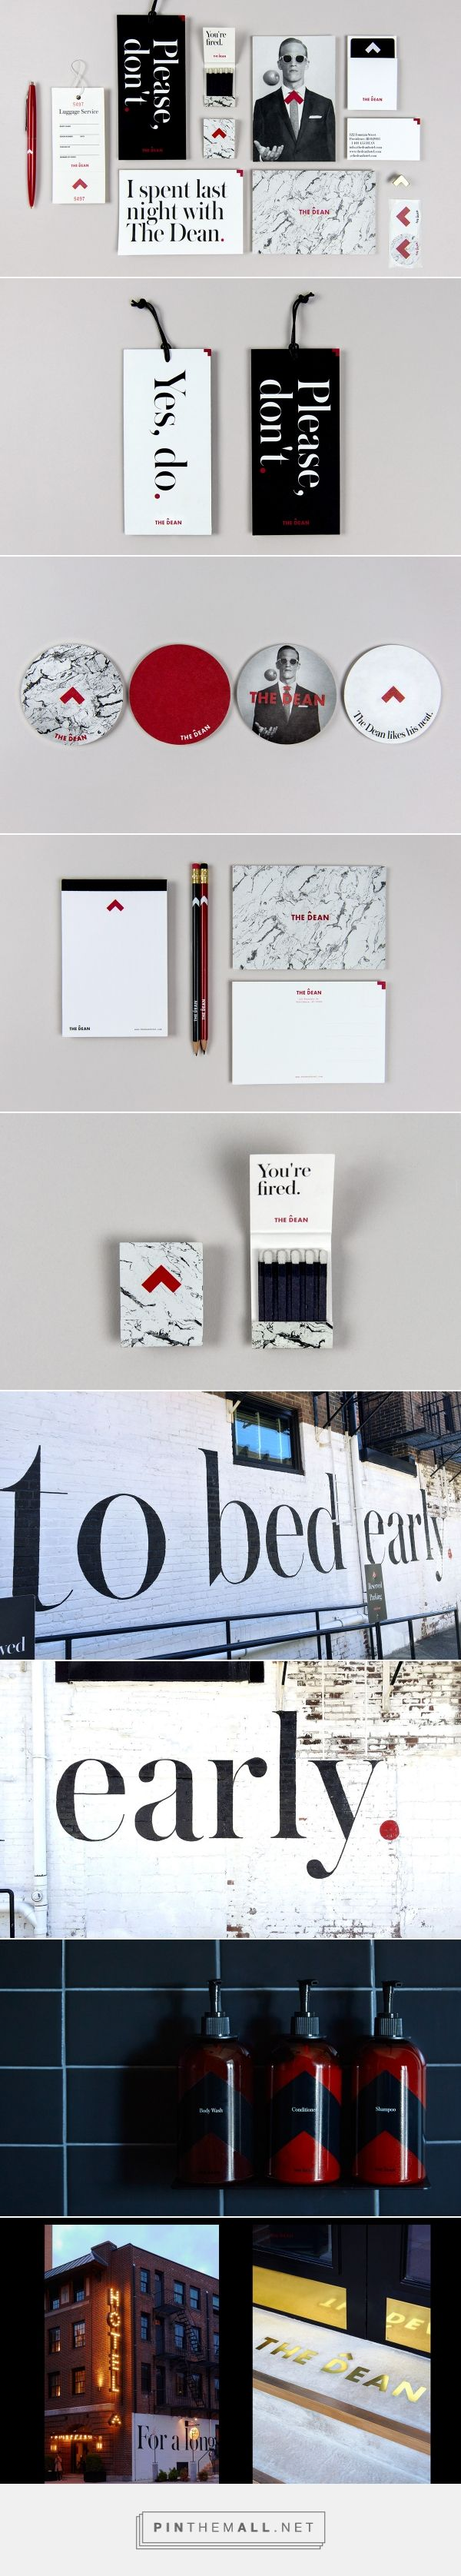 The Dean Hotel Branding by Watson & Co. | Fivestar Branding Agency – Design and Branding Agency & Curated Inspiration Gallery